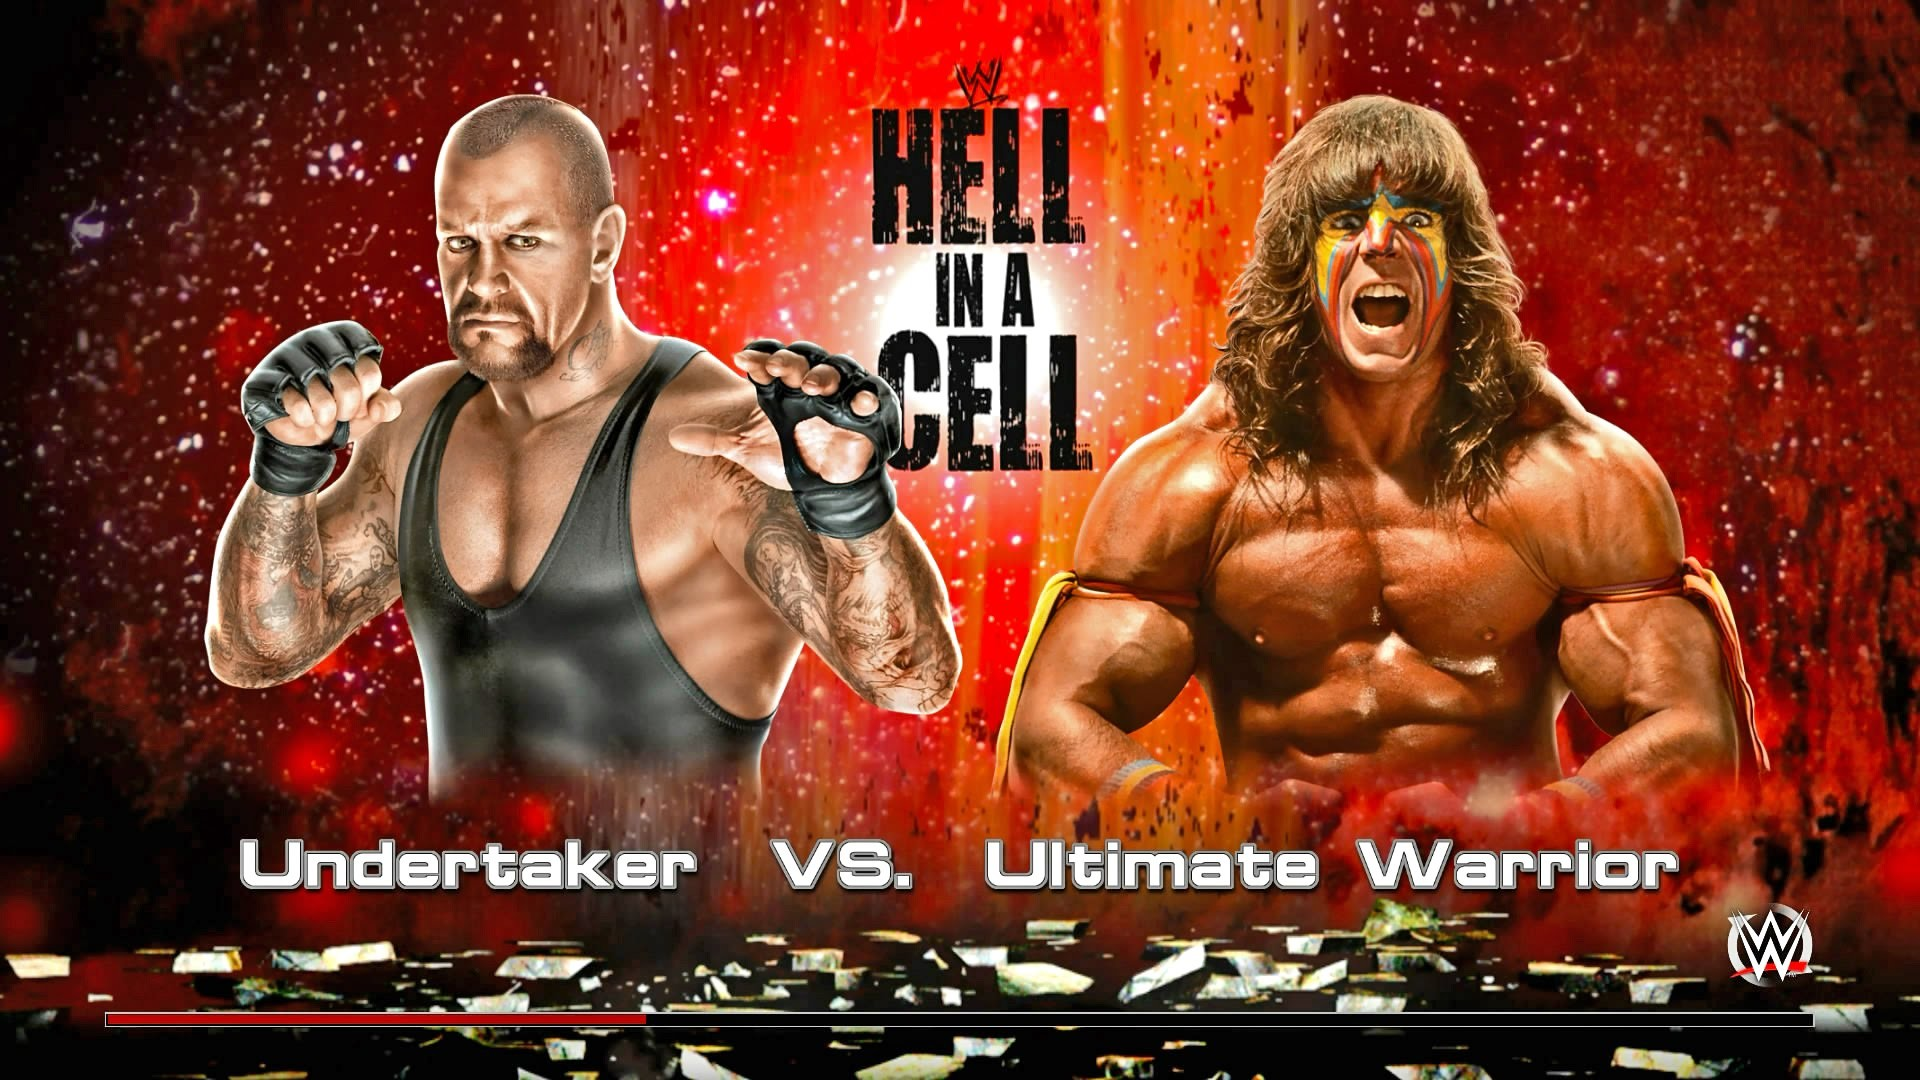 WWE Ultimate Warrior Wallpaper (72+ images)